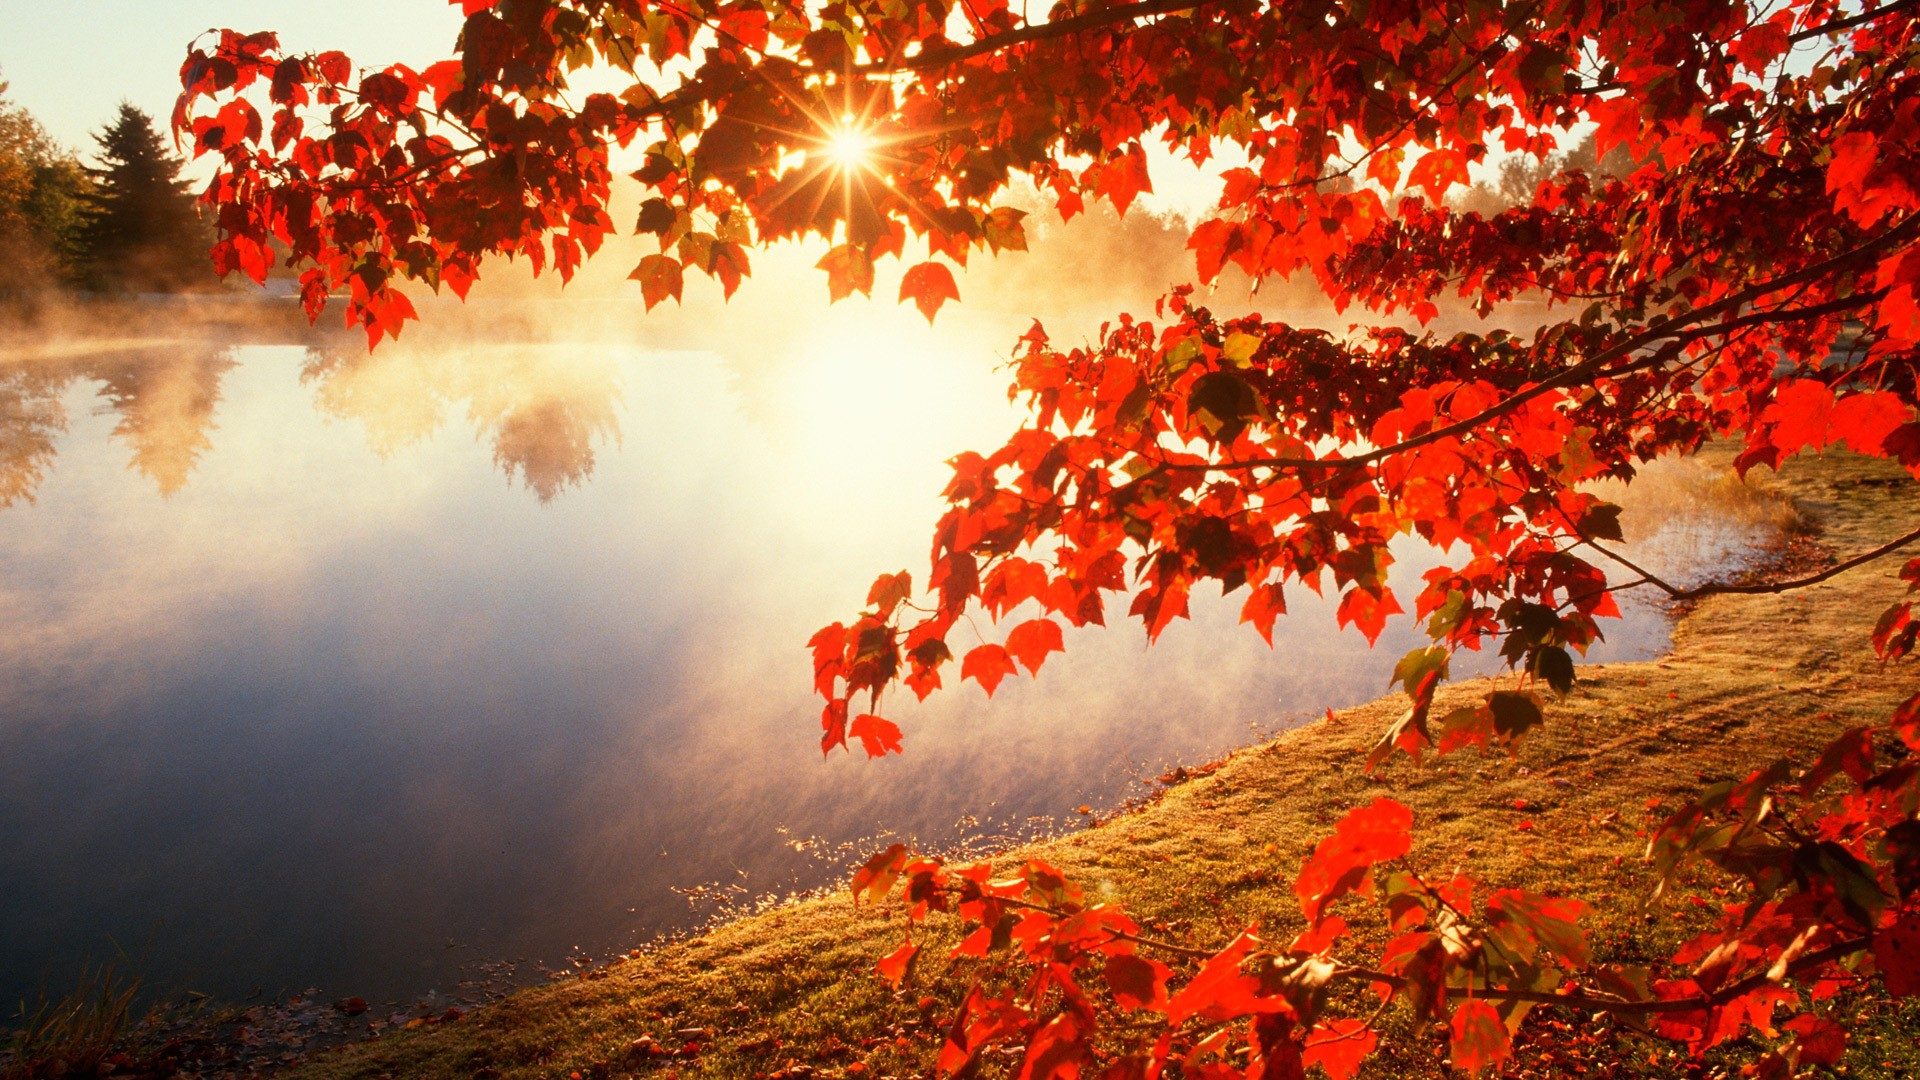 70 fall backgrounds download free cool full hd backgrounds for